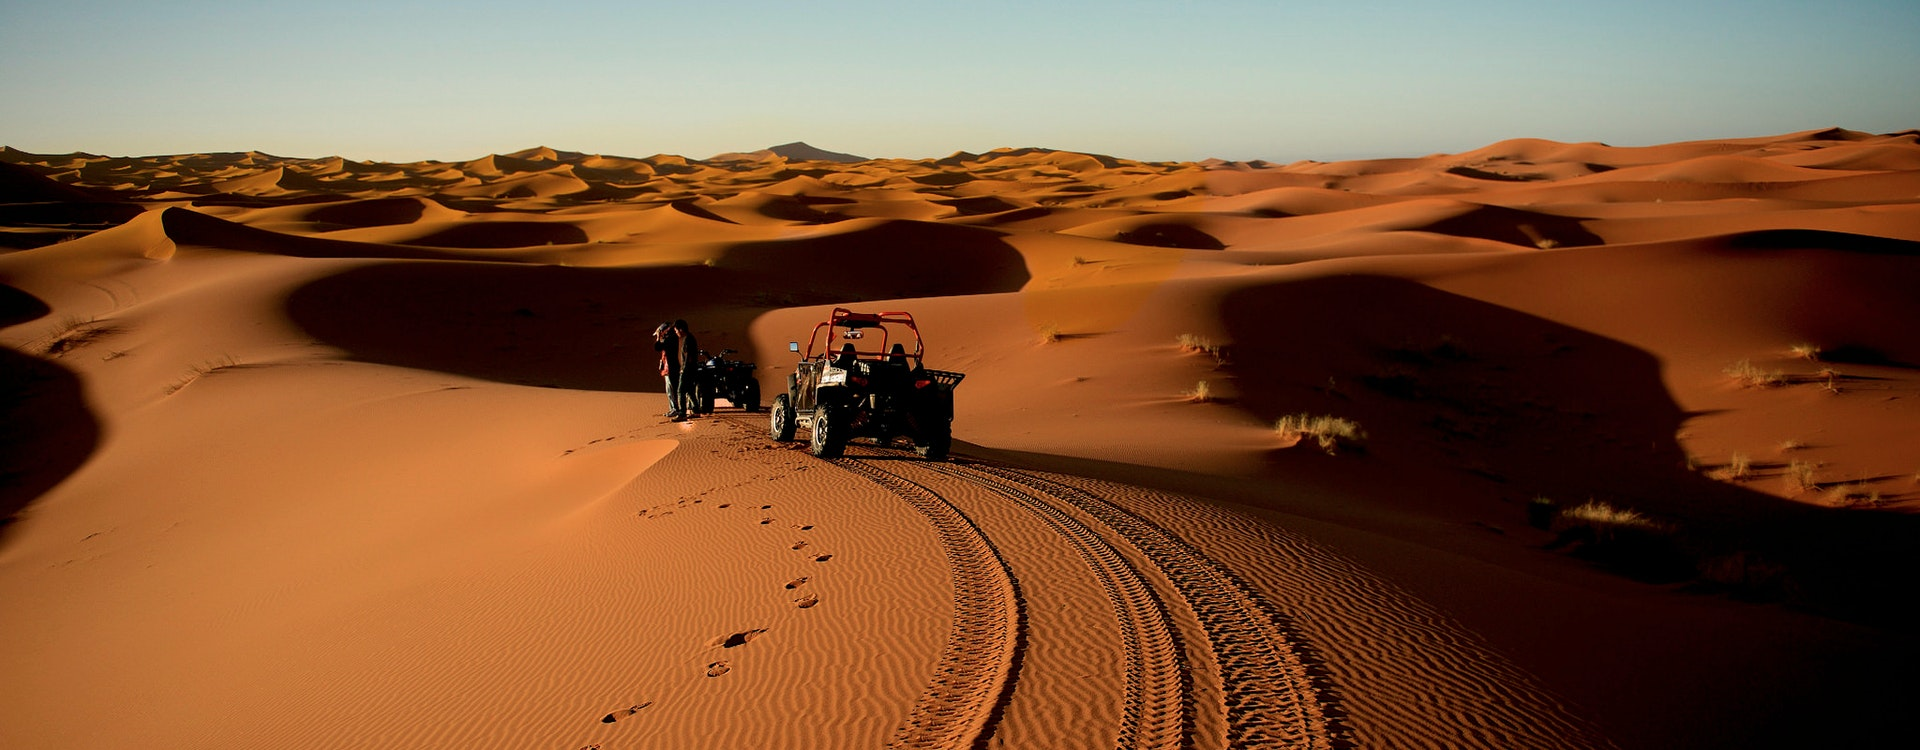 adventure desert safaris dune buggy